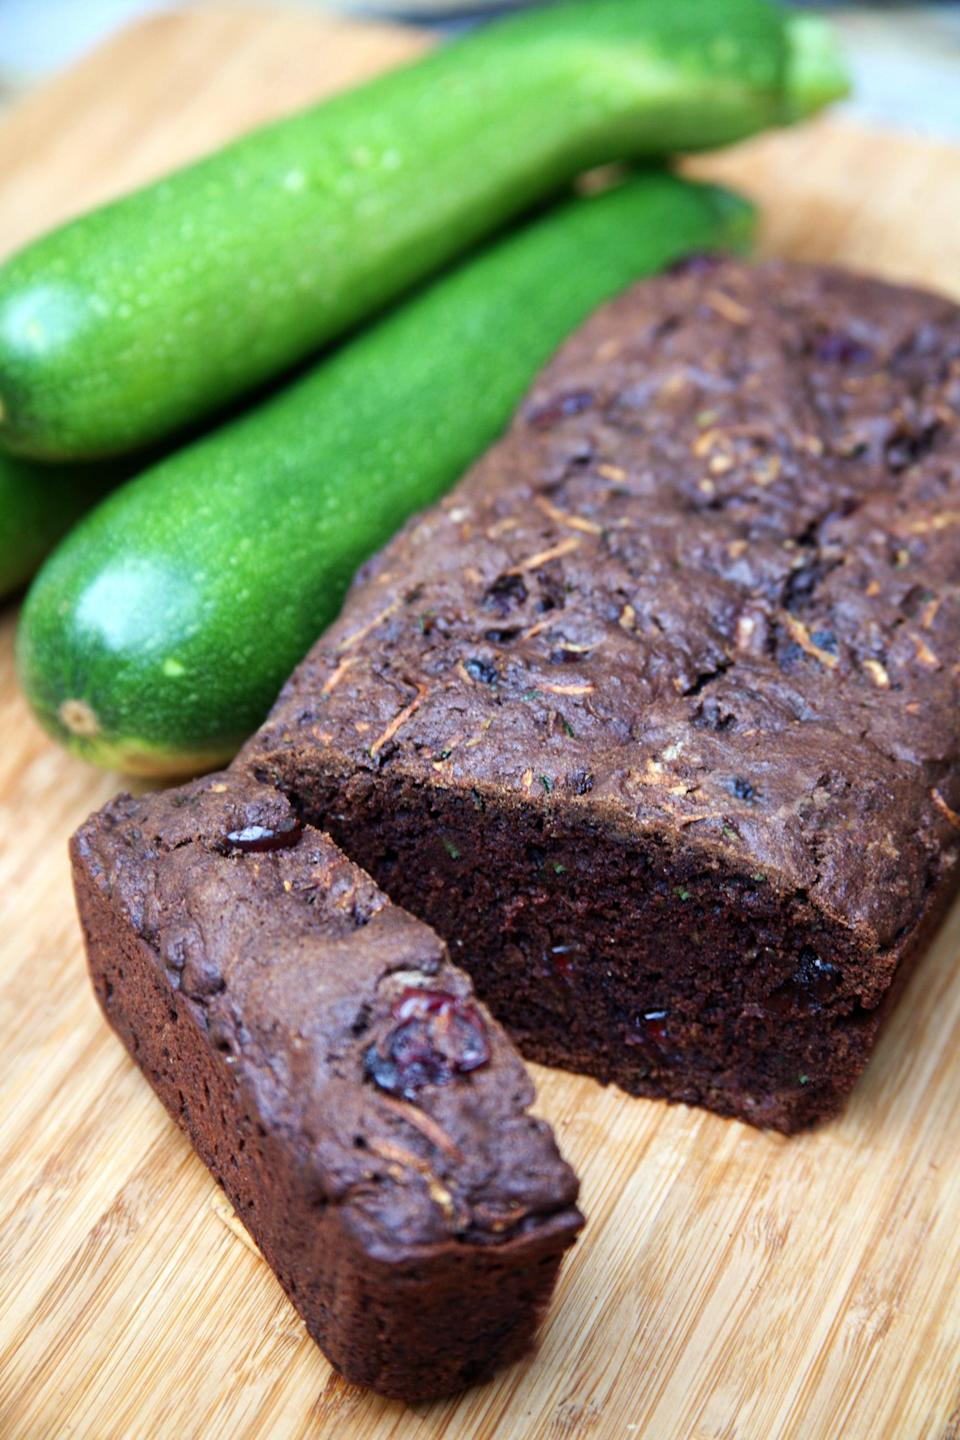 "<p>Try this decadent chocolate twist on the classic zucchini bread recipe - the dried cranberries add such a unique and delicious flavor.</p> <p><strong>Calories:</strong> 260 per slice<br> <strong>Protein:</strong> 3.1 grams</p> <p><strong>Get the recipe:</strong> <a href=""https://www.popsugar.com/fitness/Vegan-Chocolate-Cranberry-Zucchini-Bread-Recipe-18785052"" class=""link rapid-noclick-resp"" rel=""nofollow noopener"" target=""_blank"" data-ylk=""slk:chocolate cranberry zucchini bread"">chocolate cranberry zucchini bread</a></p>"